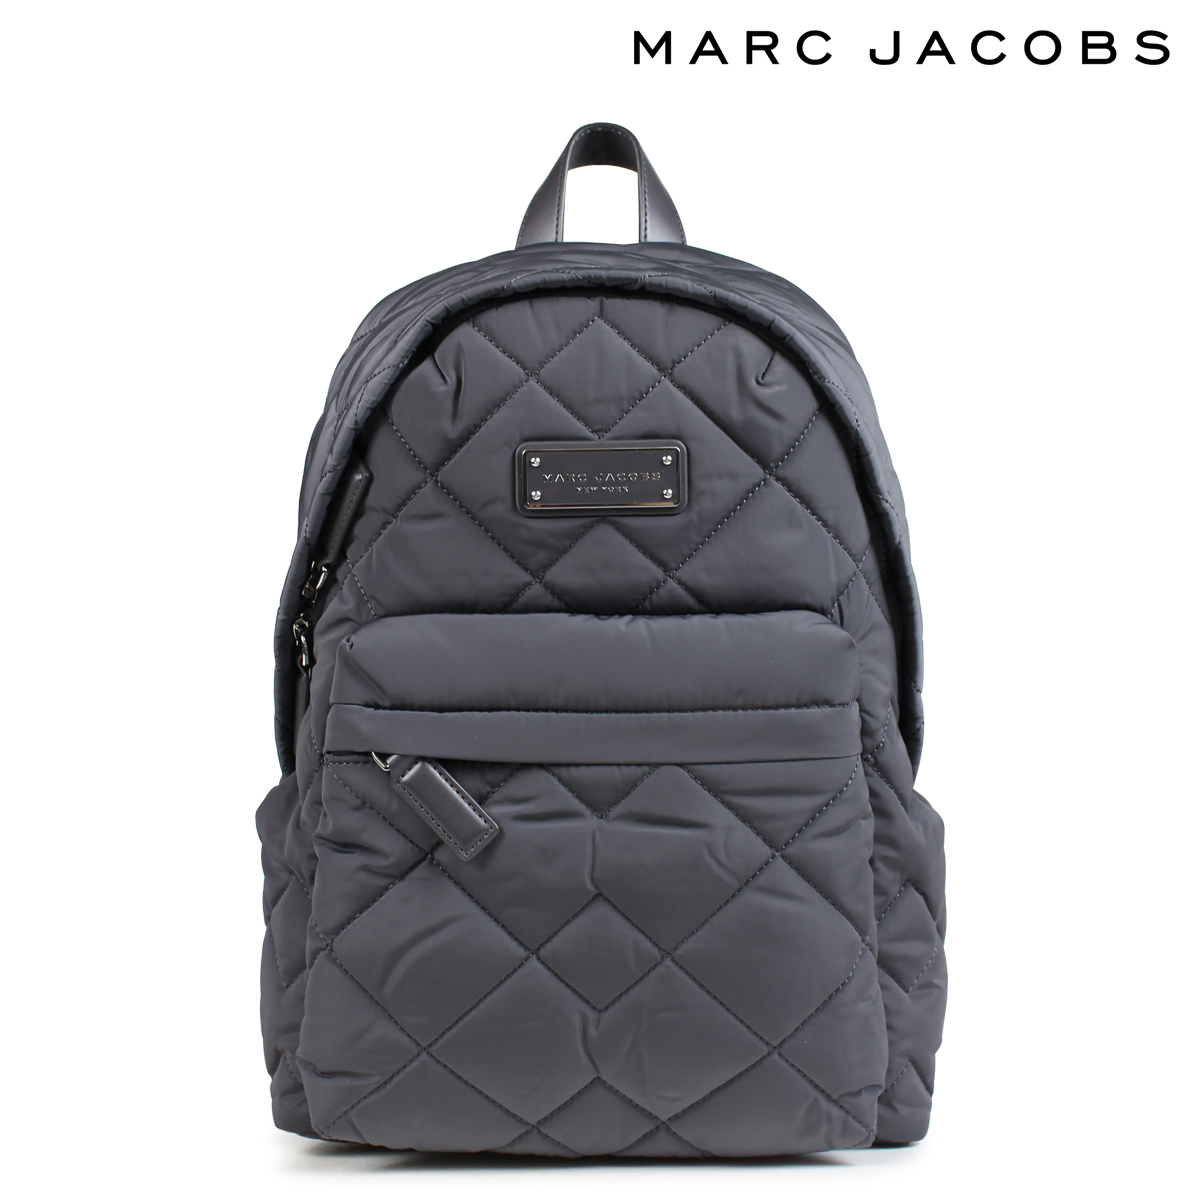 MARC JACOBS QUILTED BACKPACK マークジェイコブス バッグ リュック レディース バックパック ブラック M0011321 [9/14 新入荷]